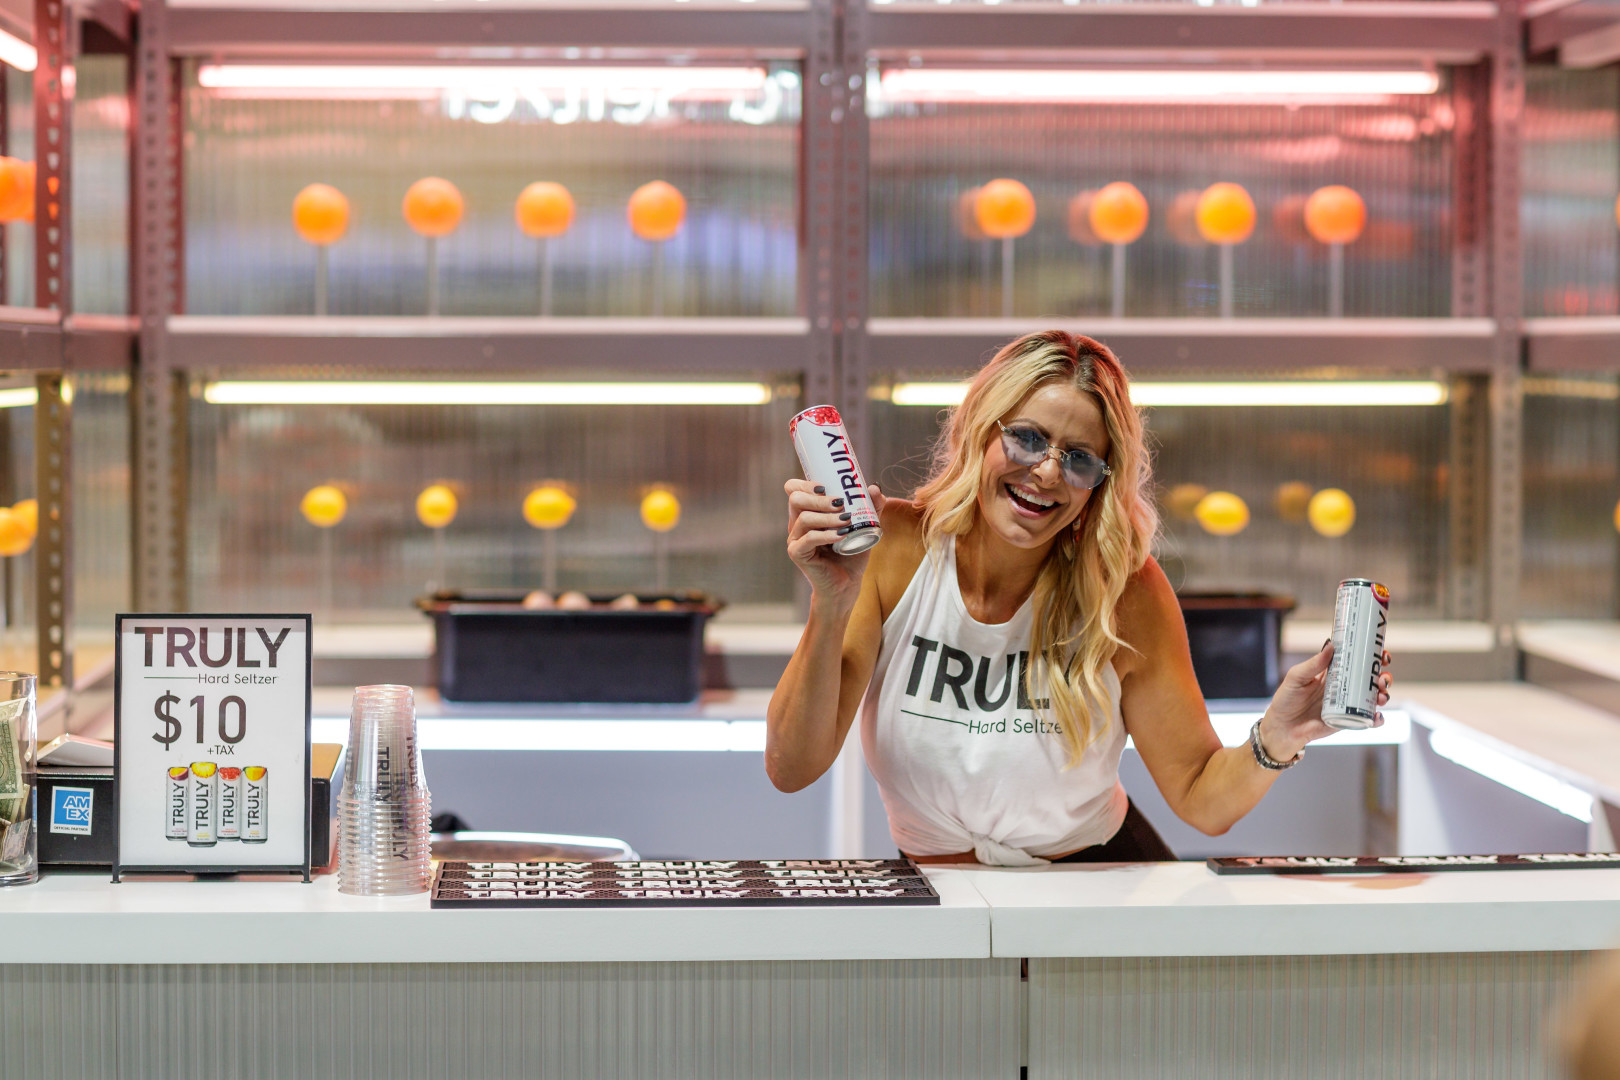 Truly Hard Seltzer Lights Up ComplexCon